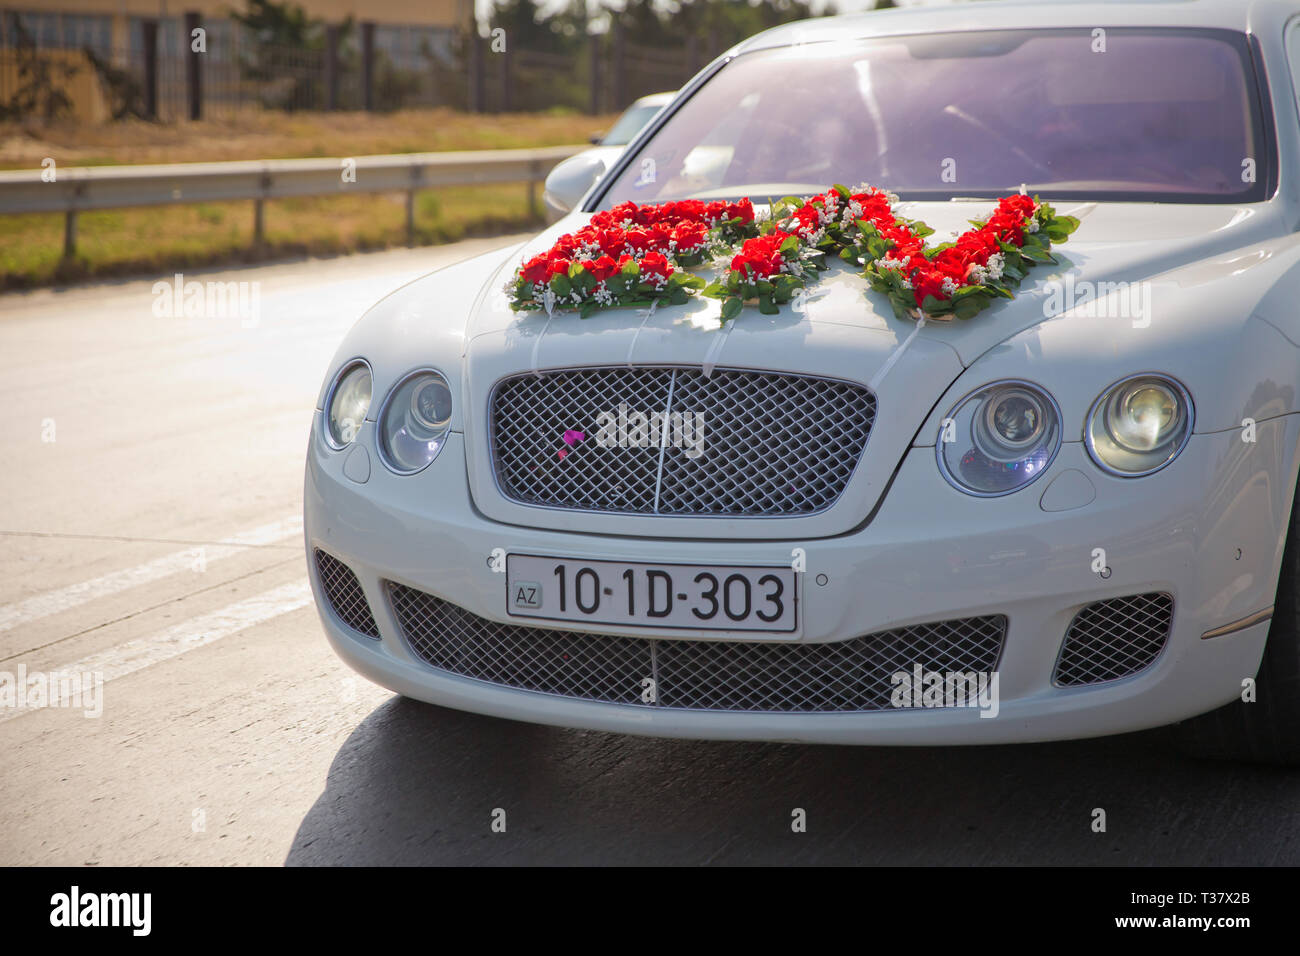 Decoration Car Hood Elegant Wedding Cars With Decor On The Hood